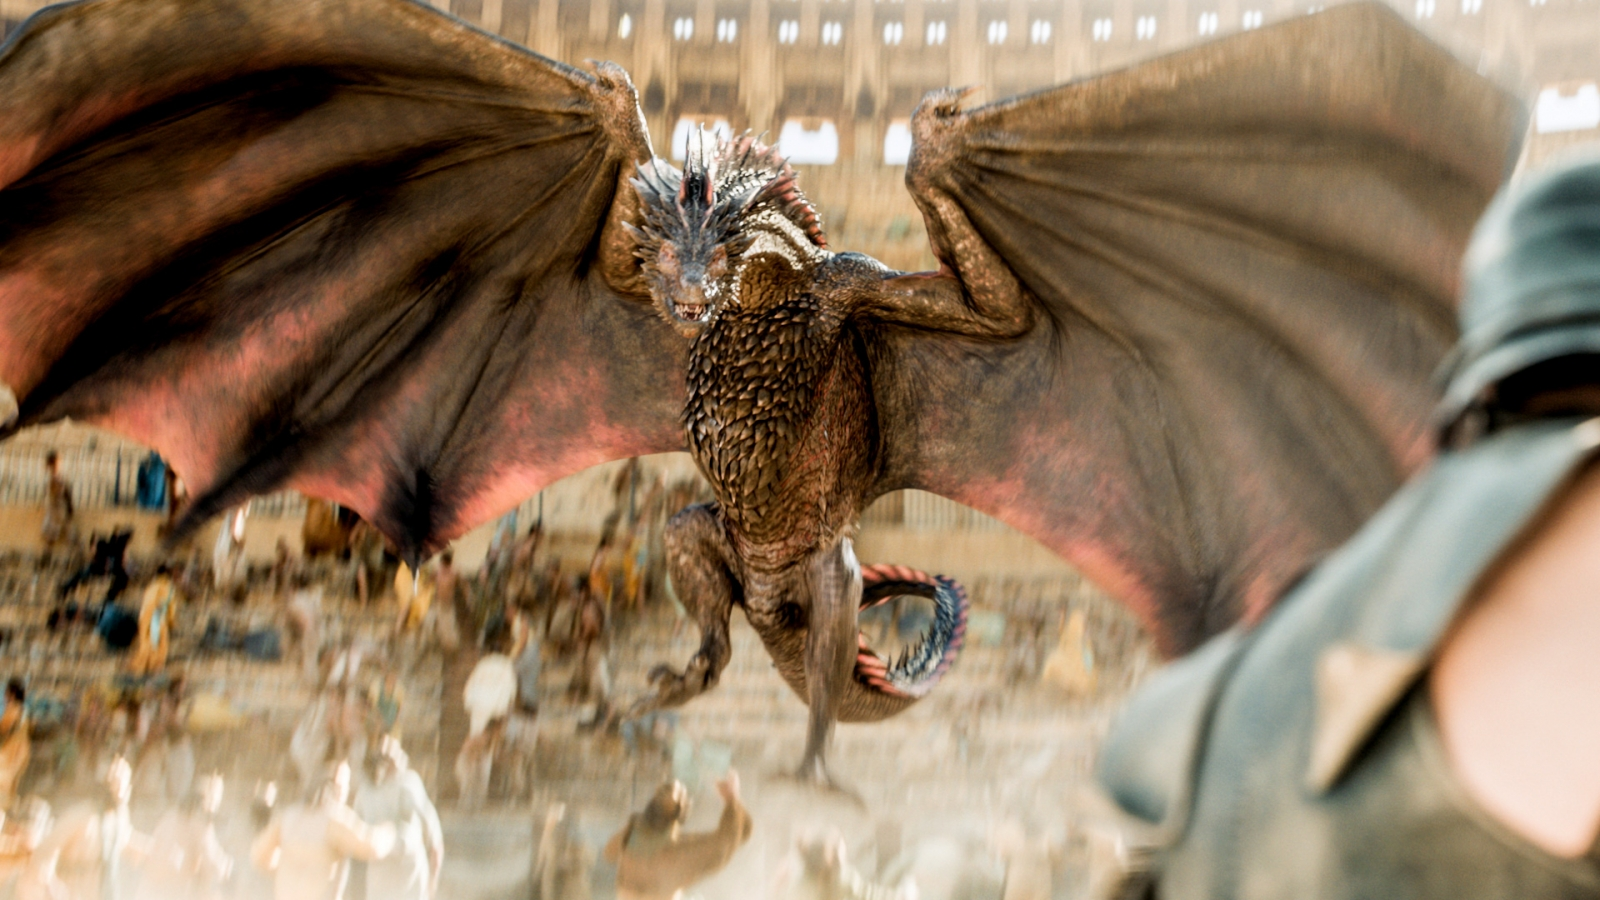 Dragons game of thrones colors - Game Of Thrones Could Dragons On Westeros Fly Aeronautical Engineering And Maths Say They Could